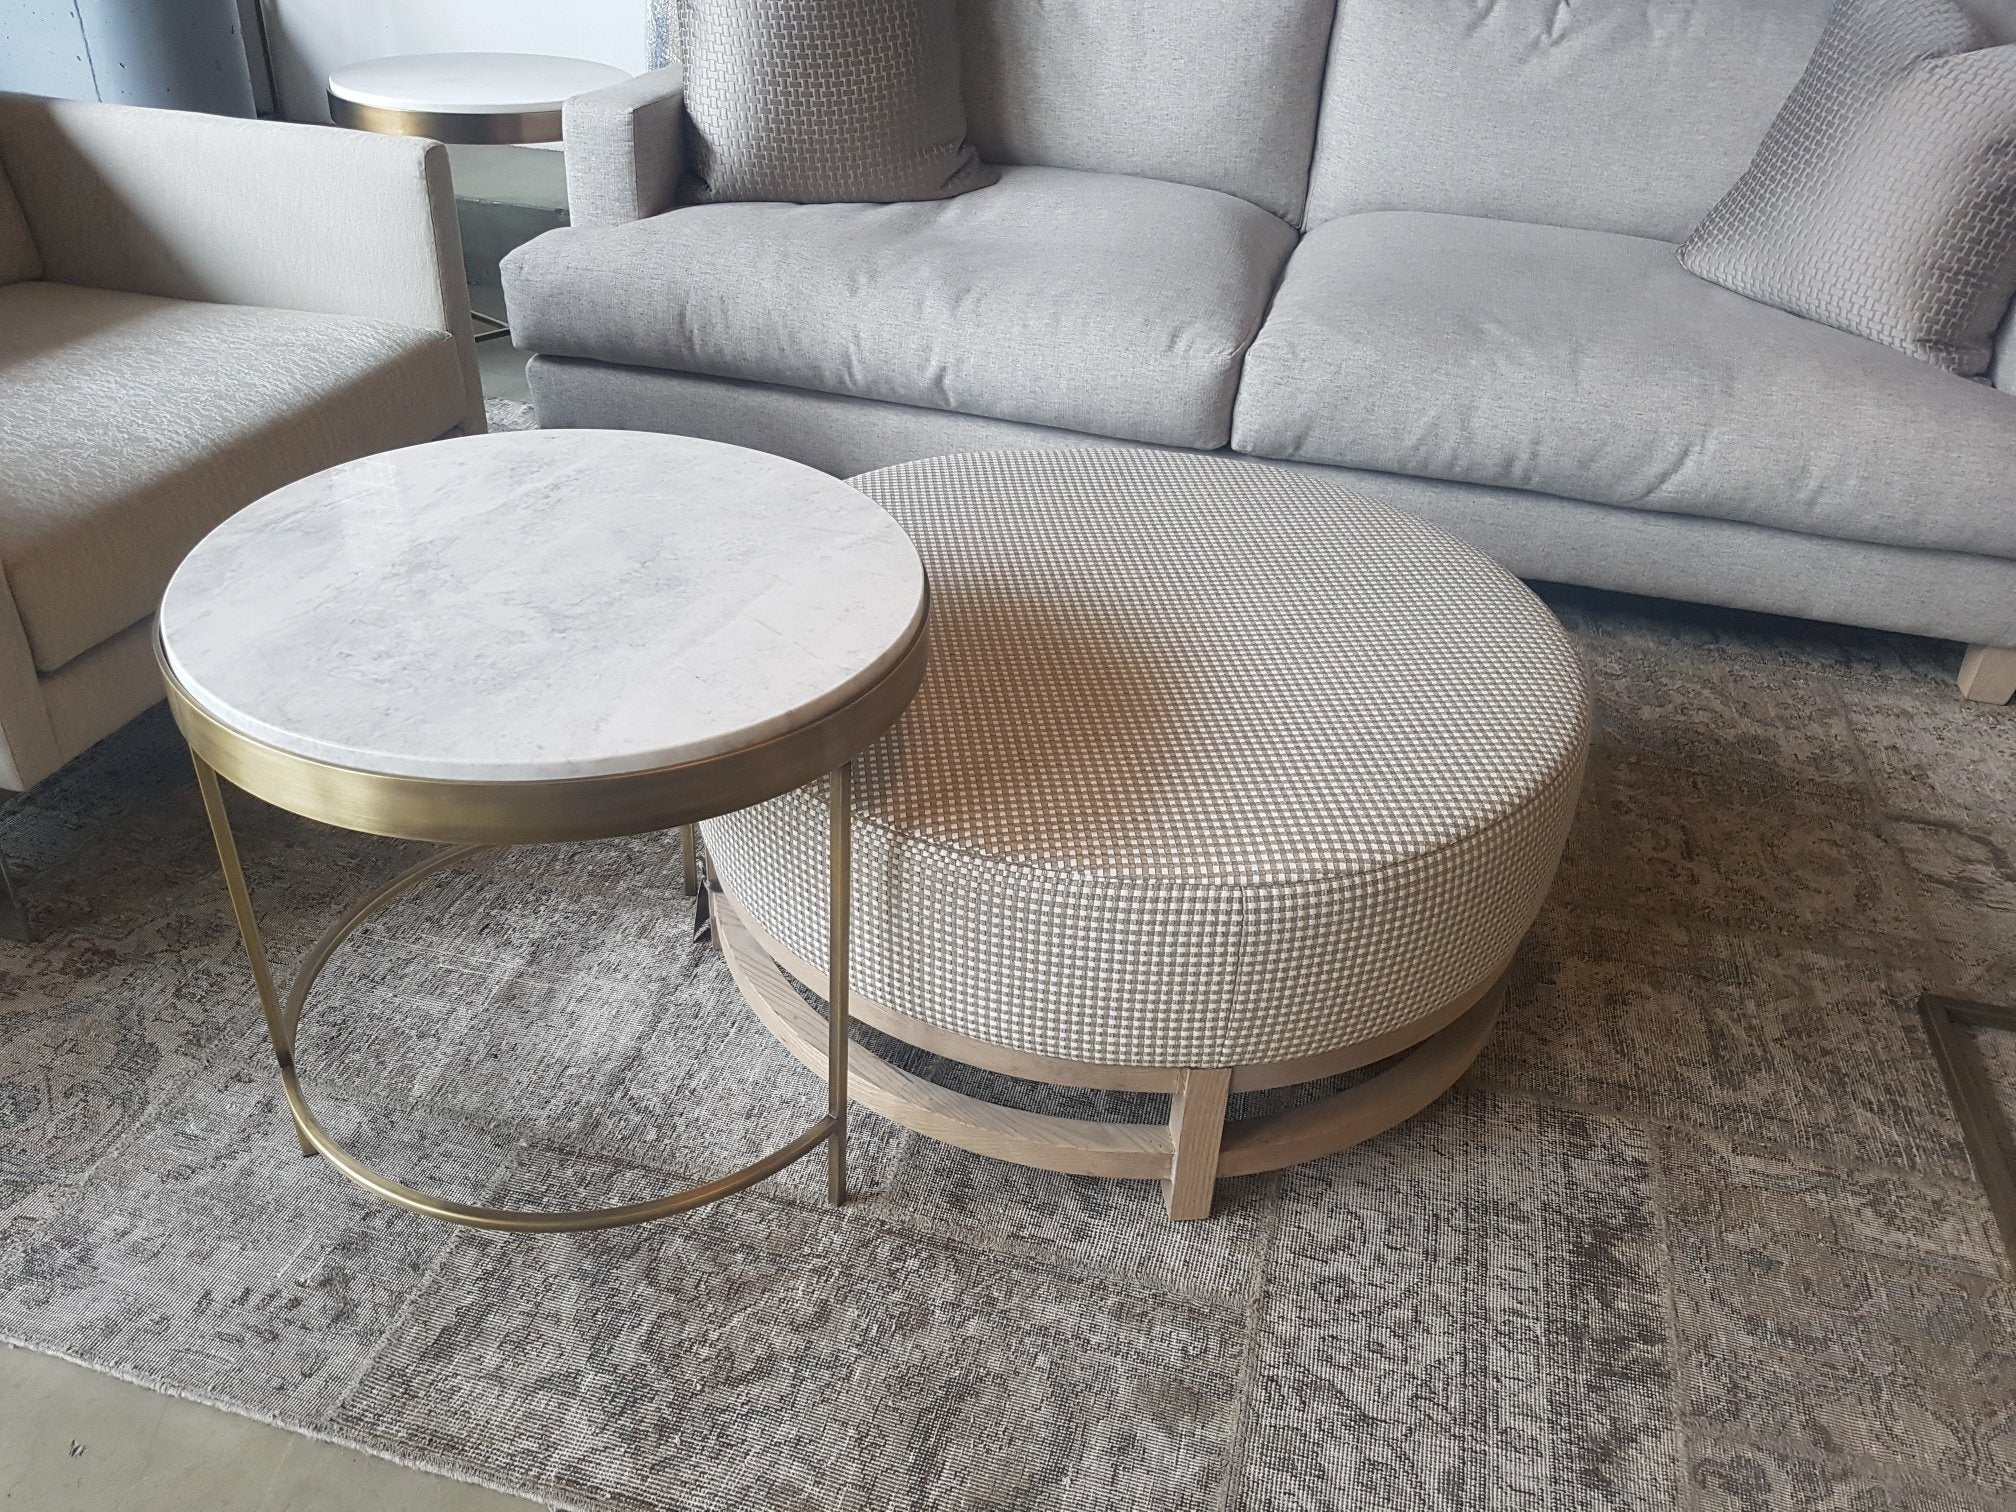 Orion Nesting Single Table - Esque